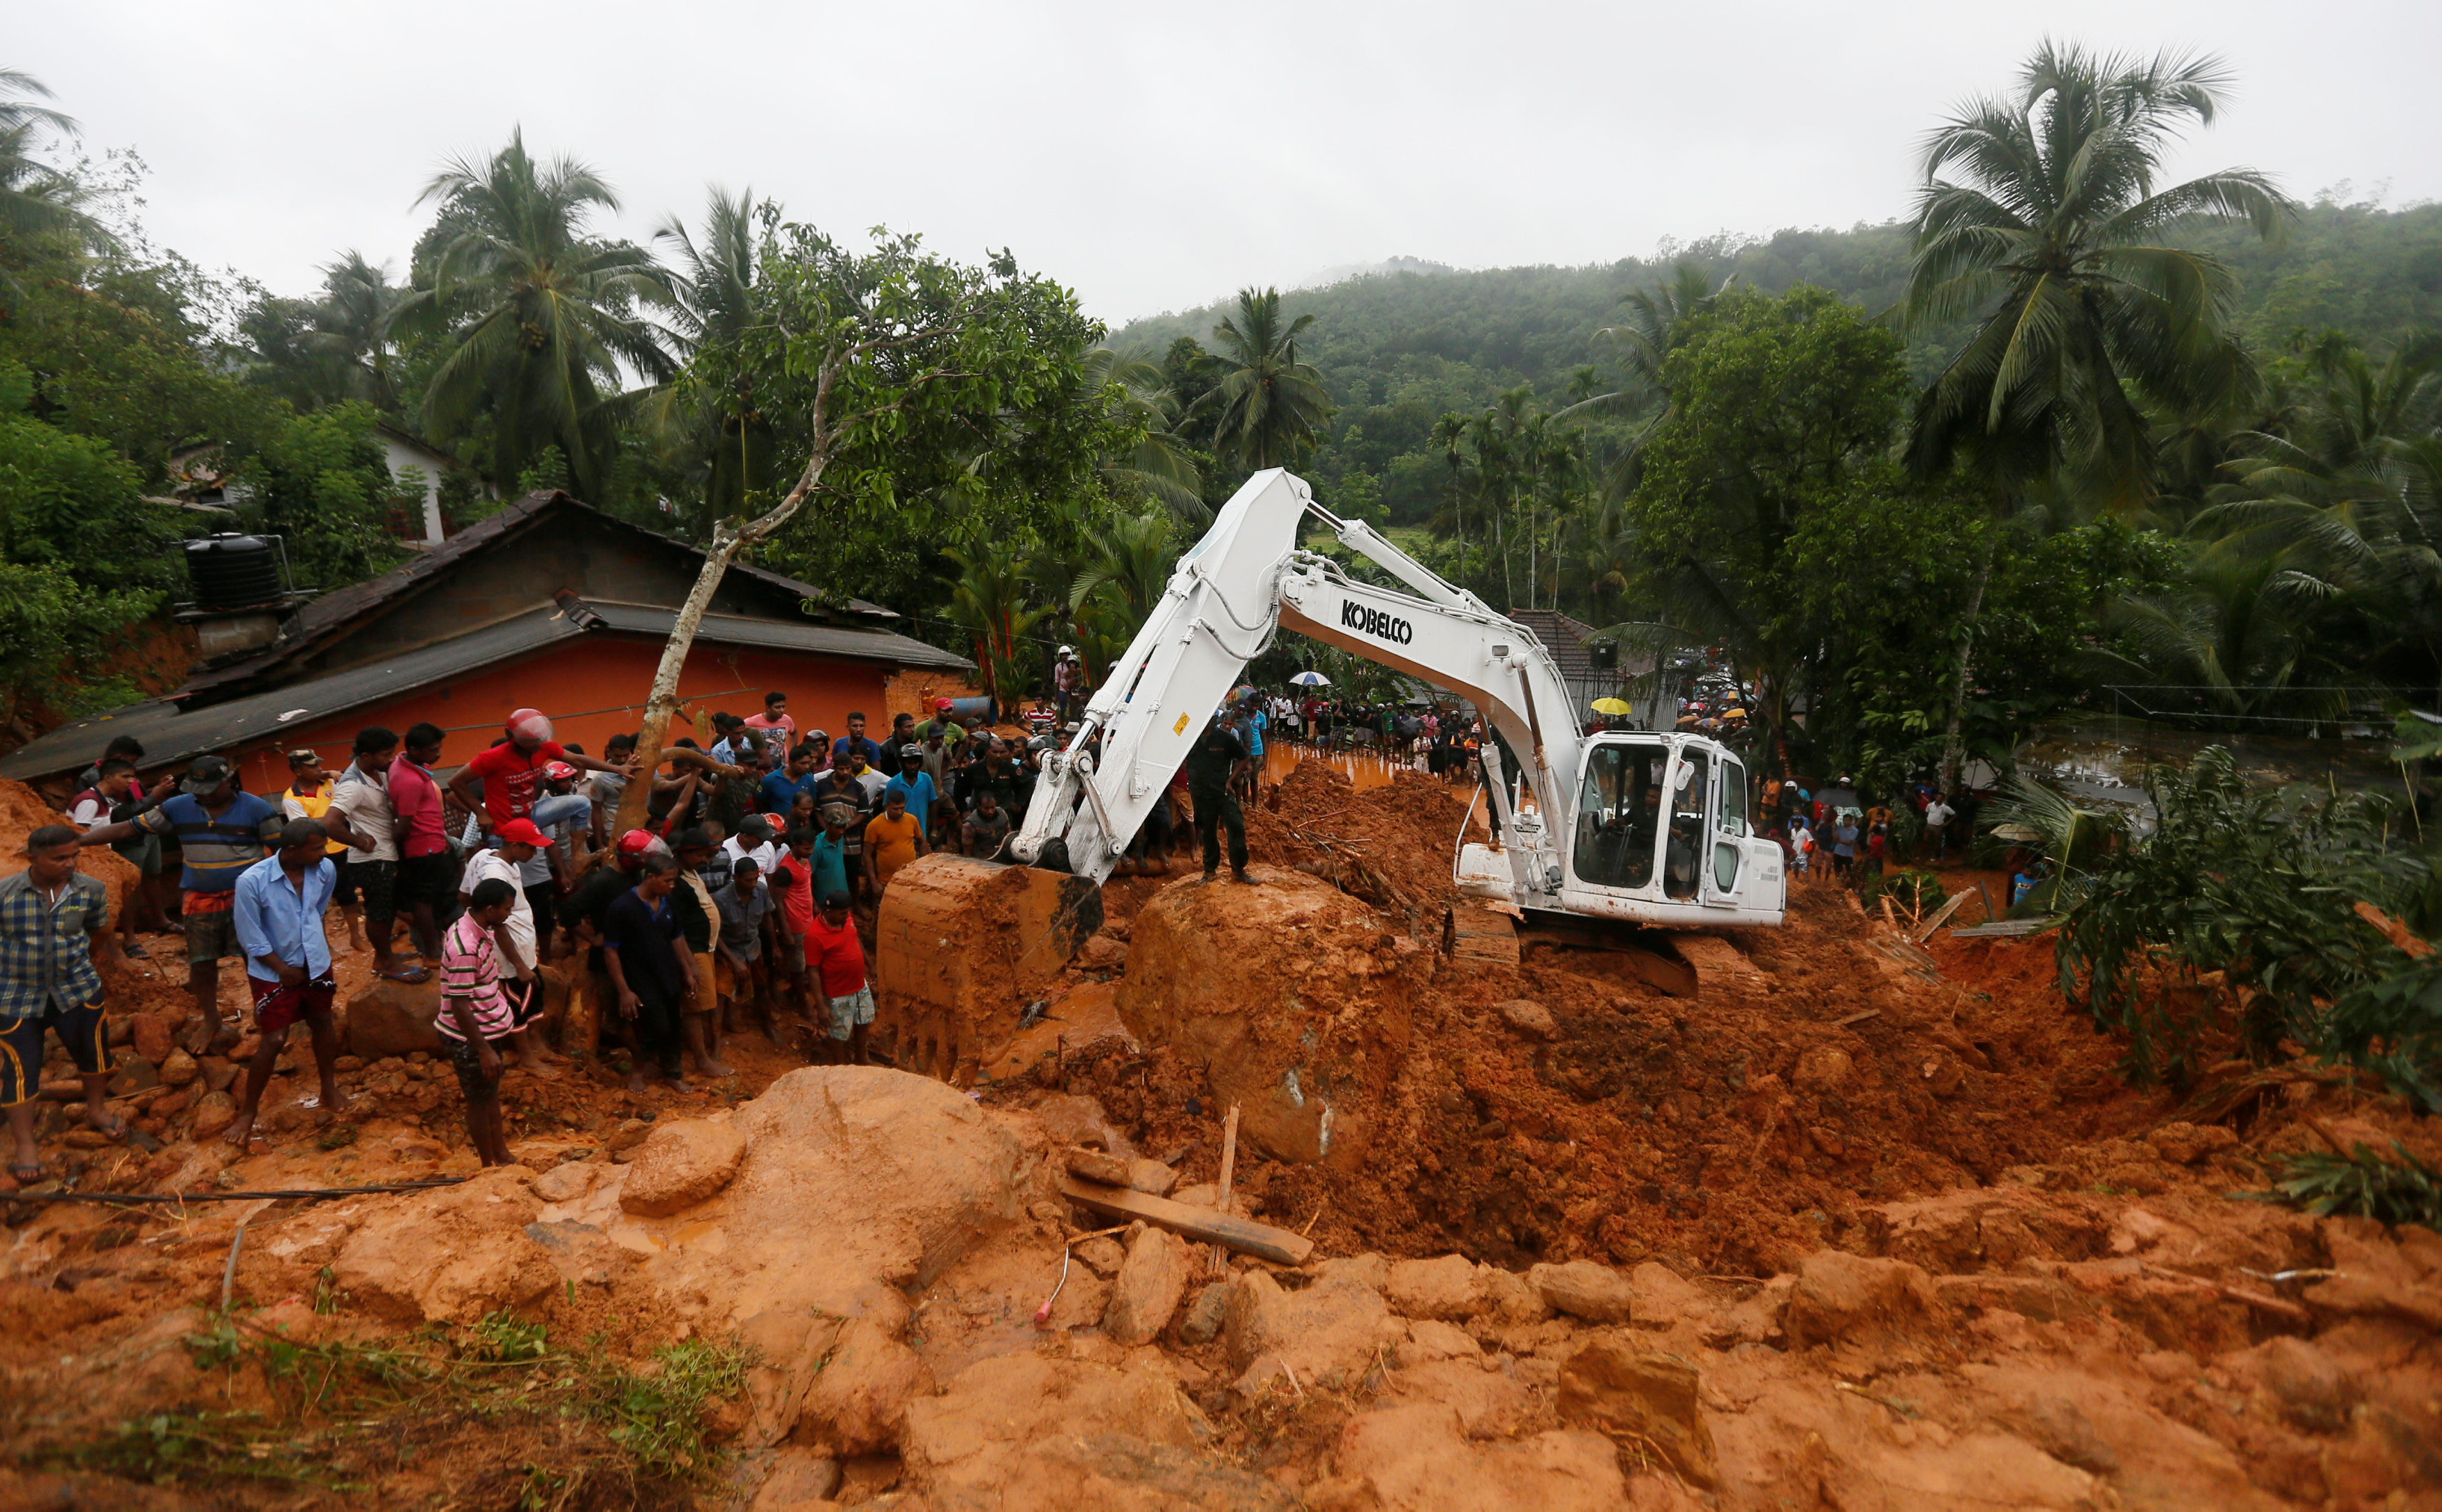 Military officials work during a rescue mission at the site of a landslide in Bellana village in Kalutara, Sri Lanka May 26, 2017. REUTERS/Dinuka Liyanawatte